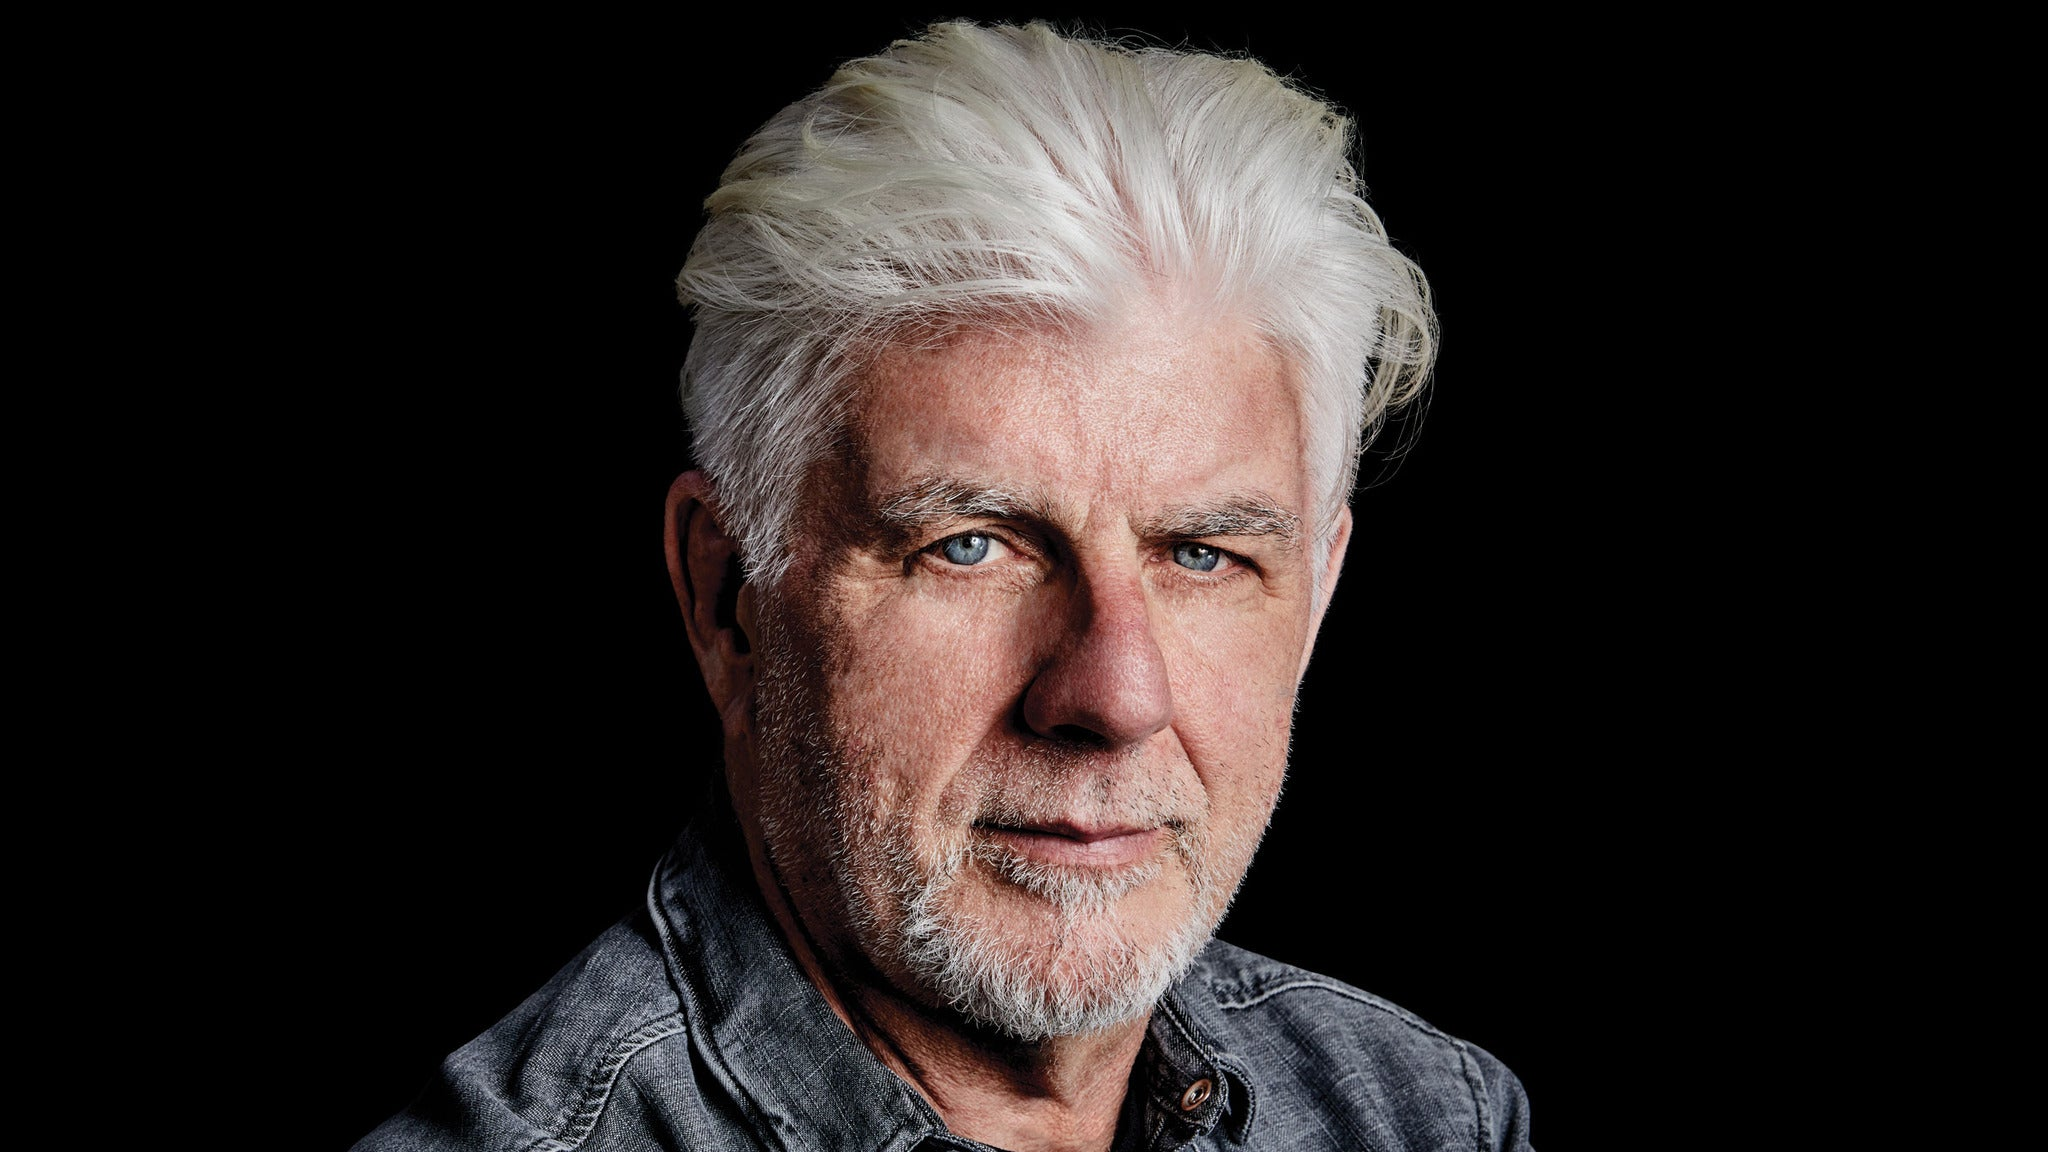 MICHAEL McDONALD and CHAKA KHAN, with special guest Devon Gilfillian